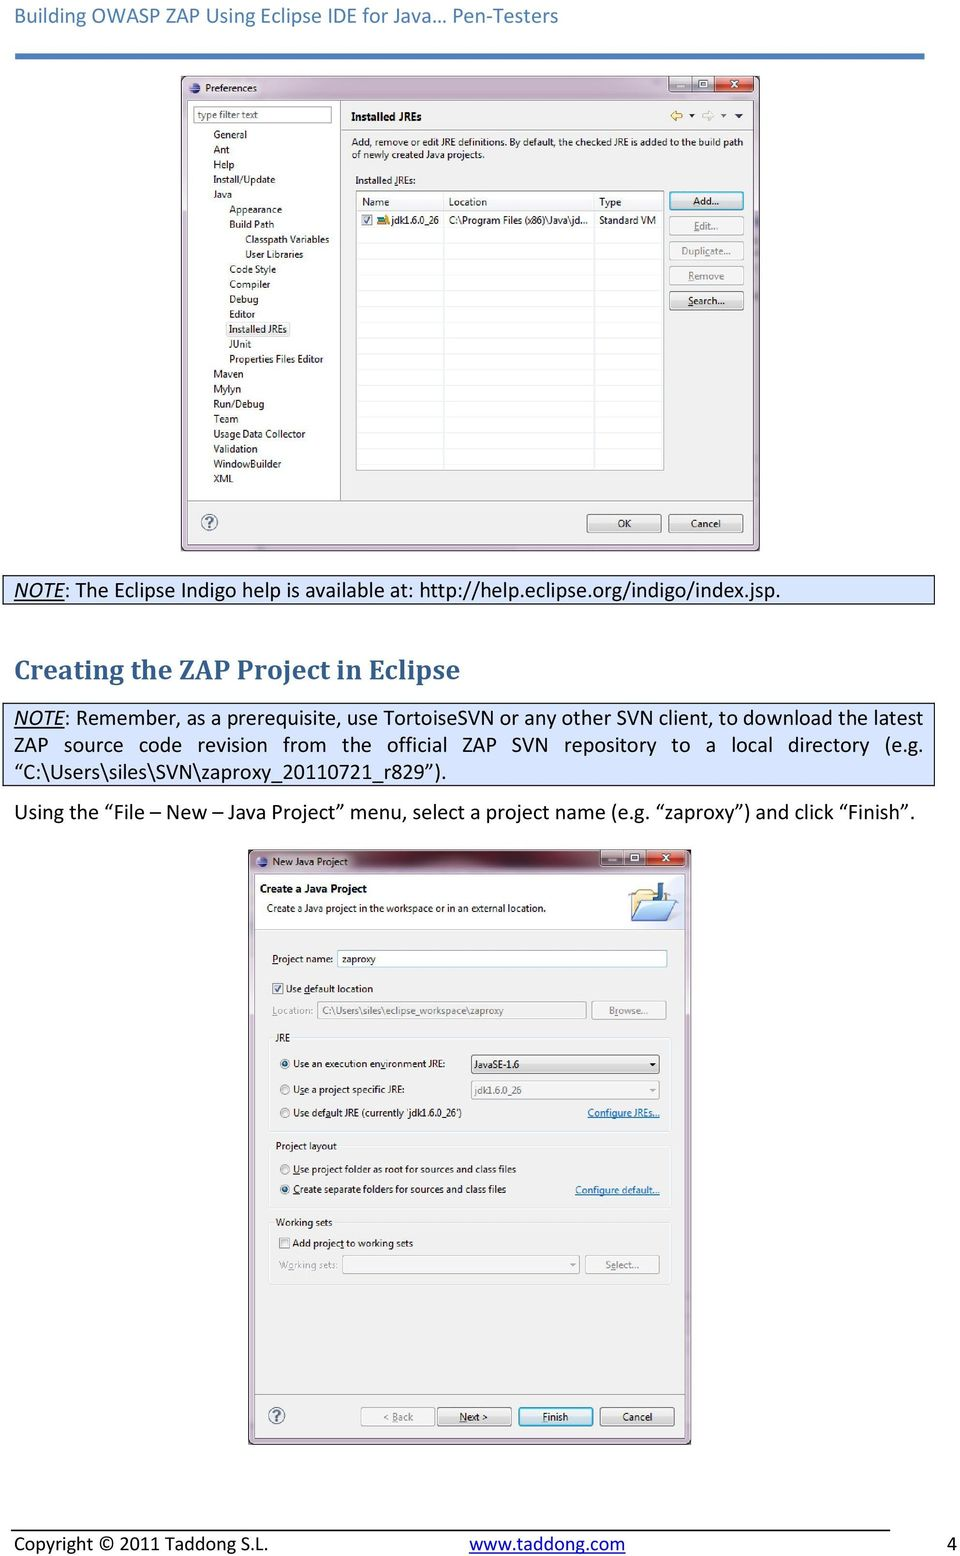 Building OWASP ZAP Using Eclipse IDE - PDF